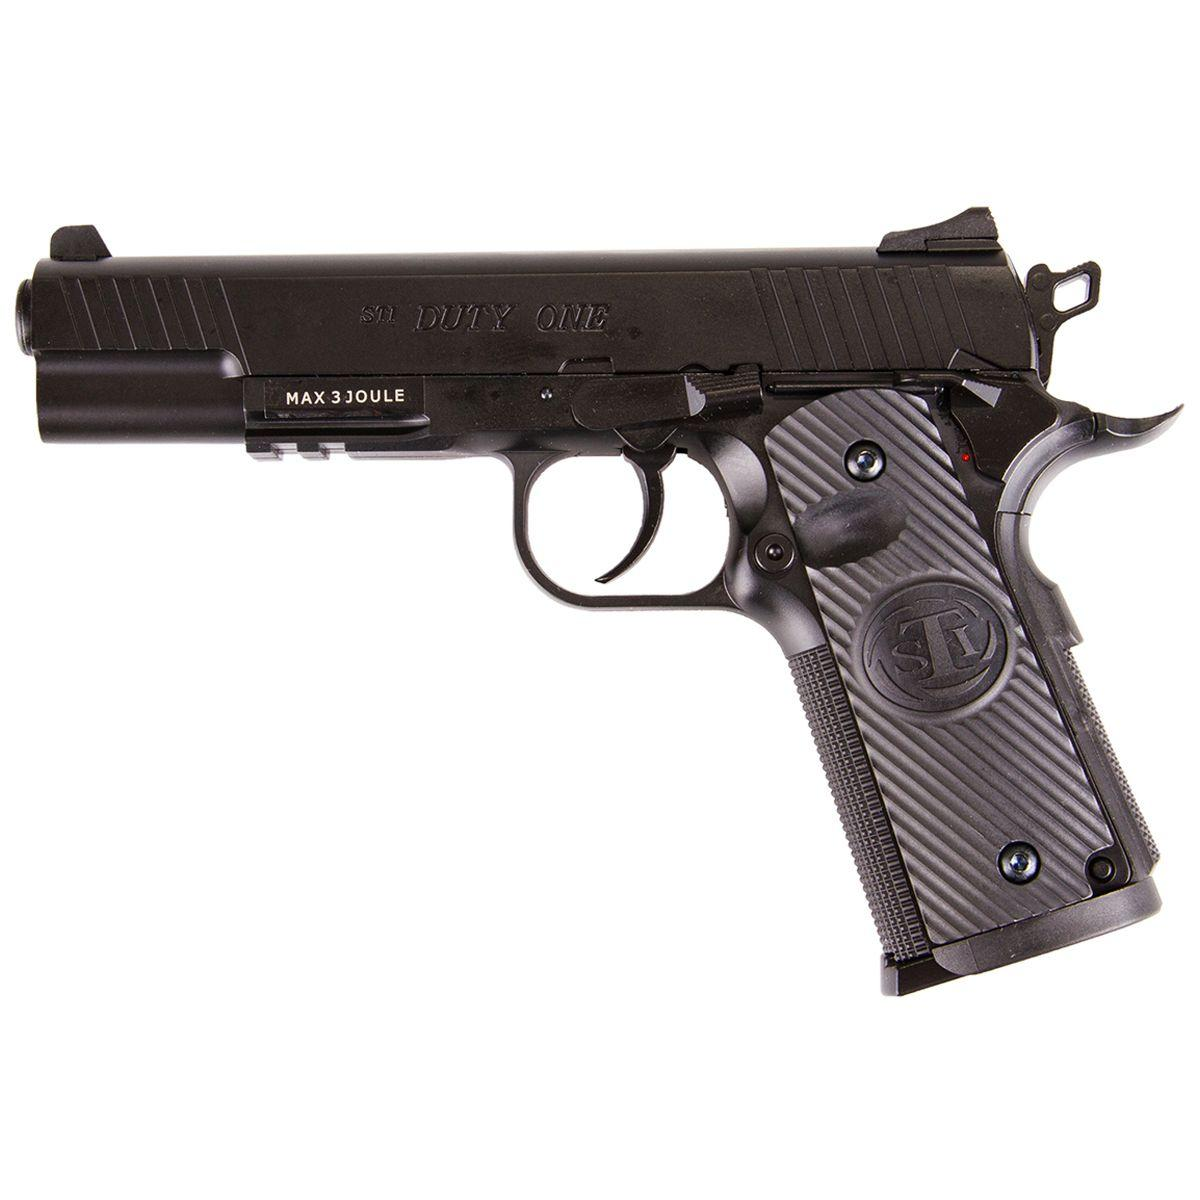 ASG Airsoft Pistol, GBB, CO2, STI DUTY ONE